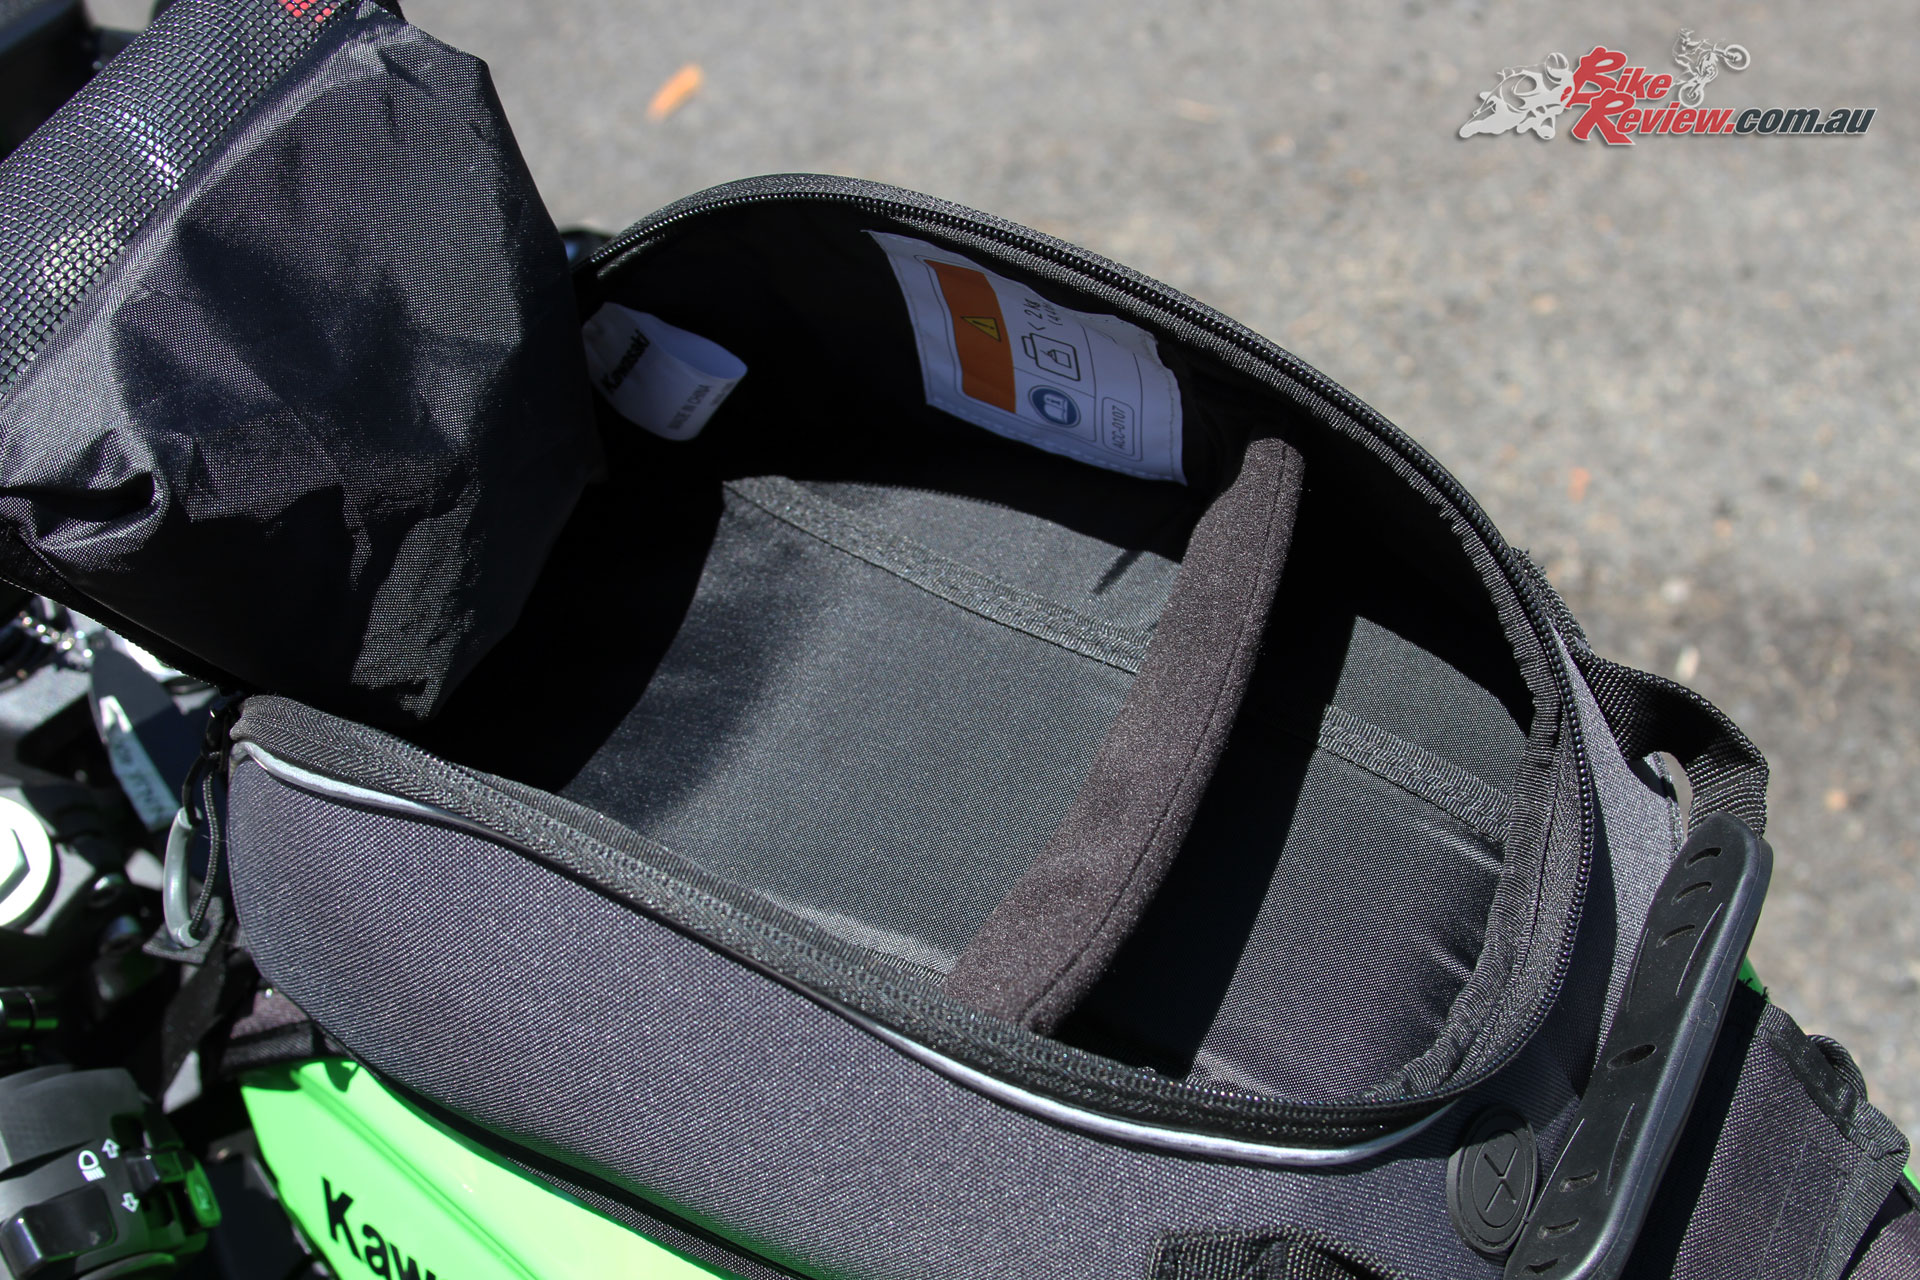 Kawasaki Genuine Tank Bag - A divider splits the main bag section